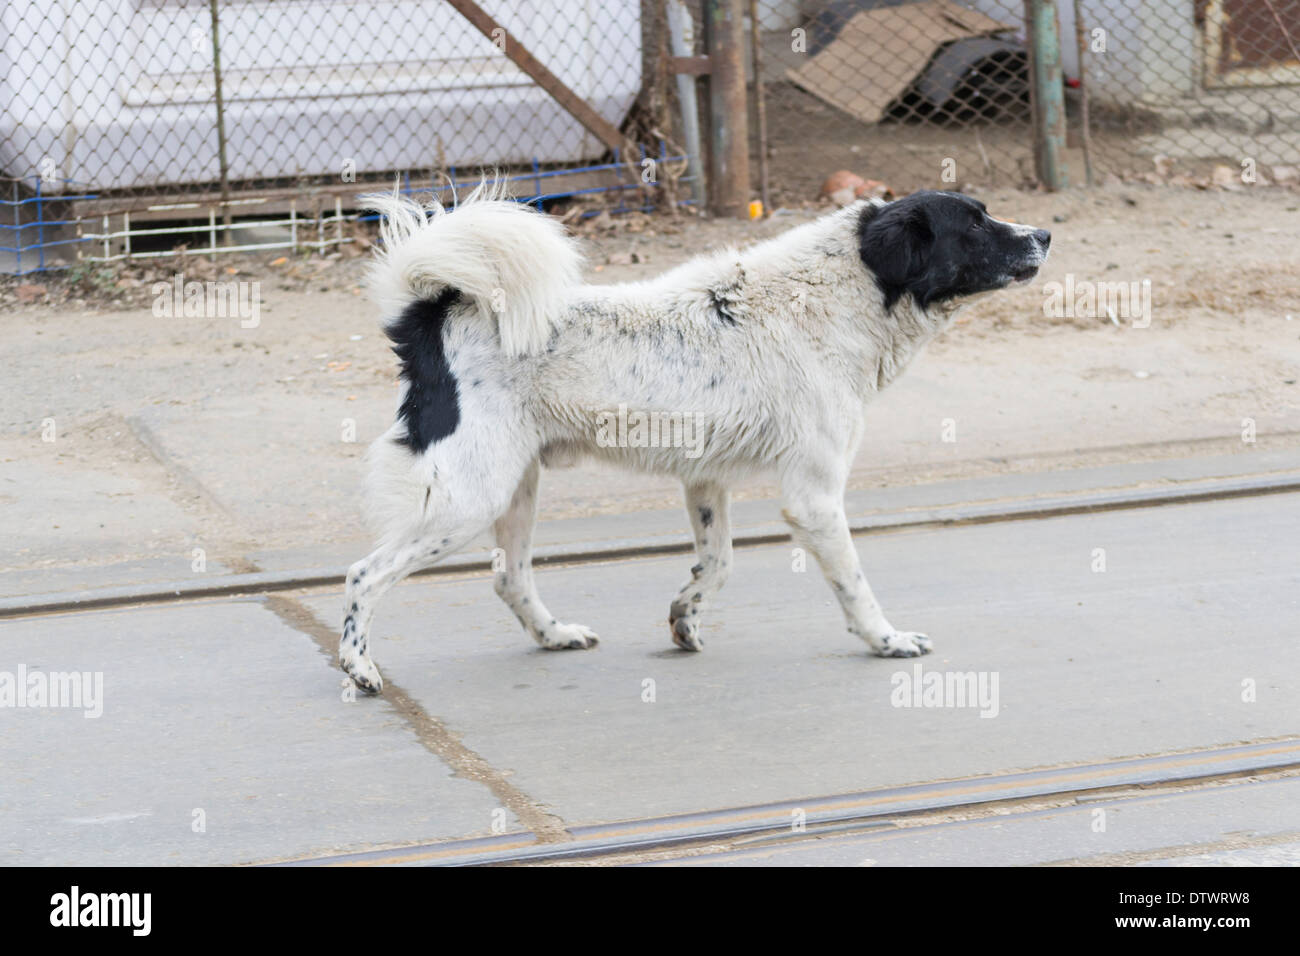 Mixed black and white stray dog (Canis lupus familiaris) - Stock Image